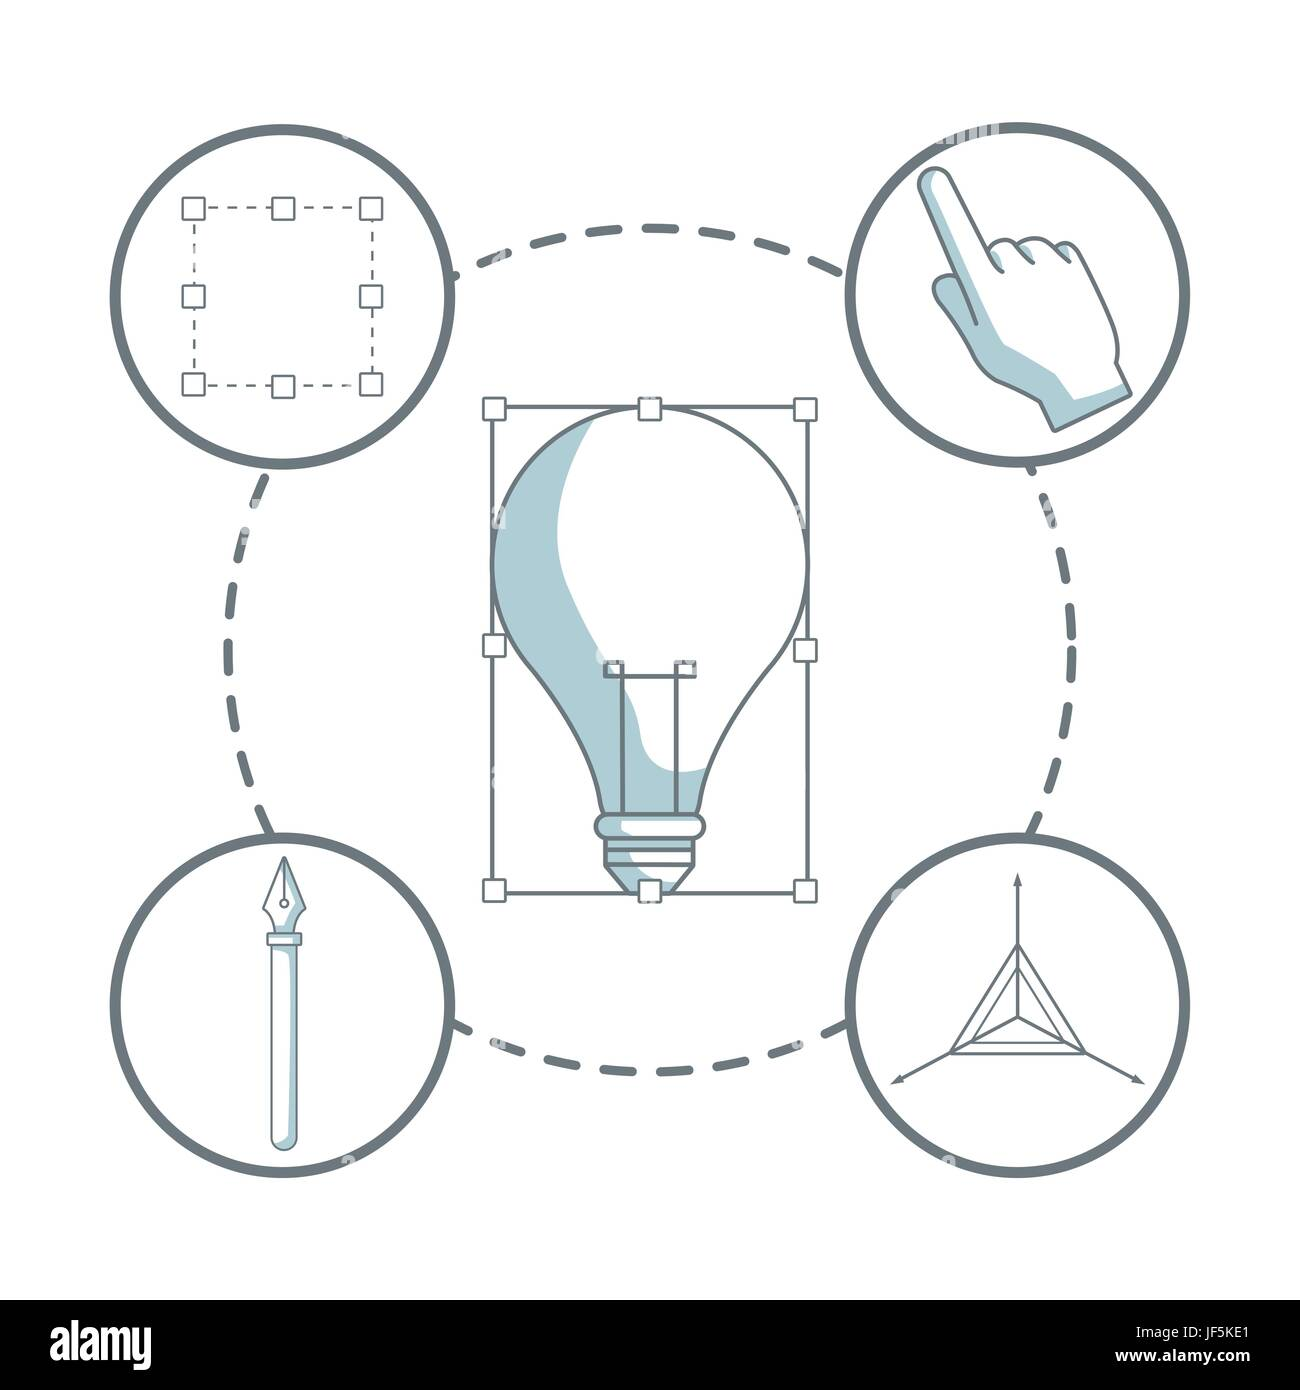 white background with silhouette color sections shading of light bulb transform with icons graphic design around - Stock Image